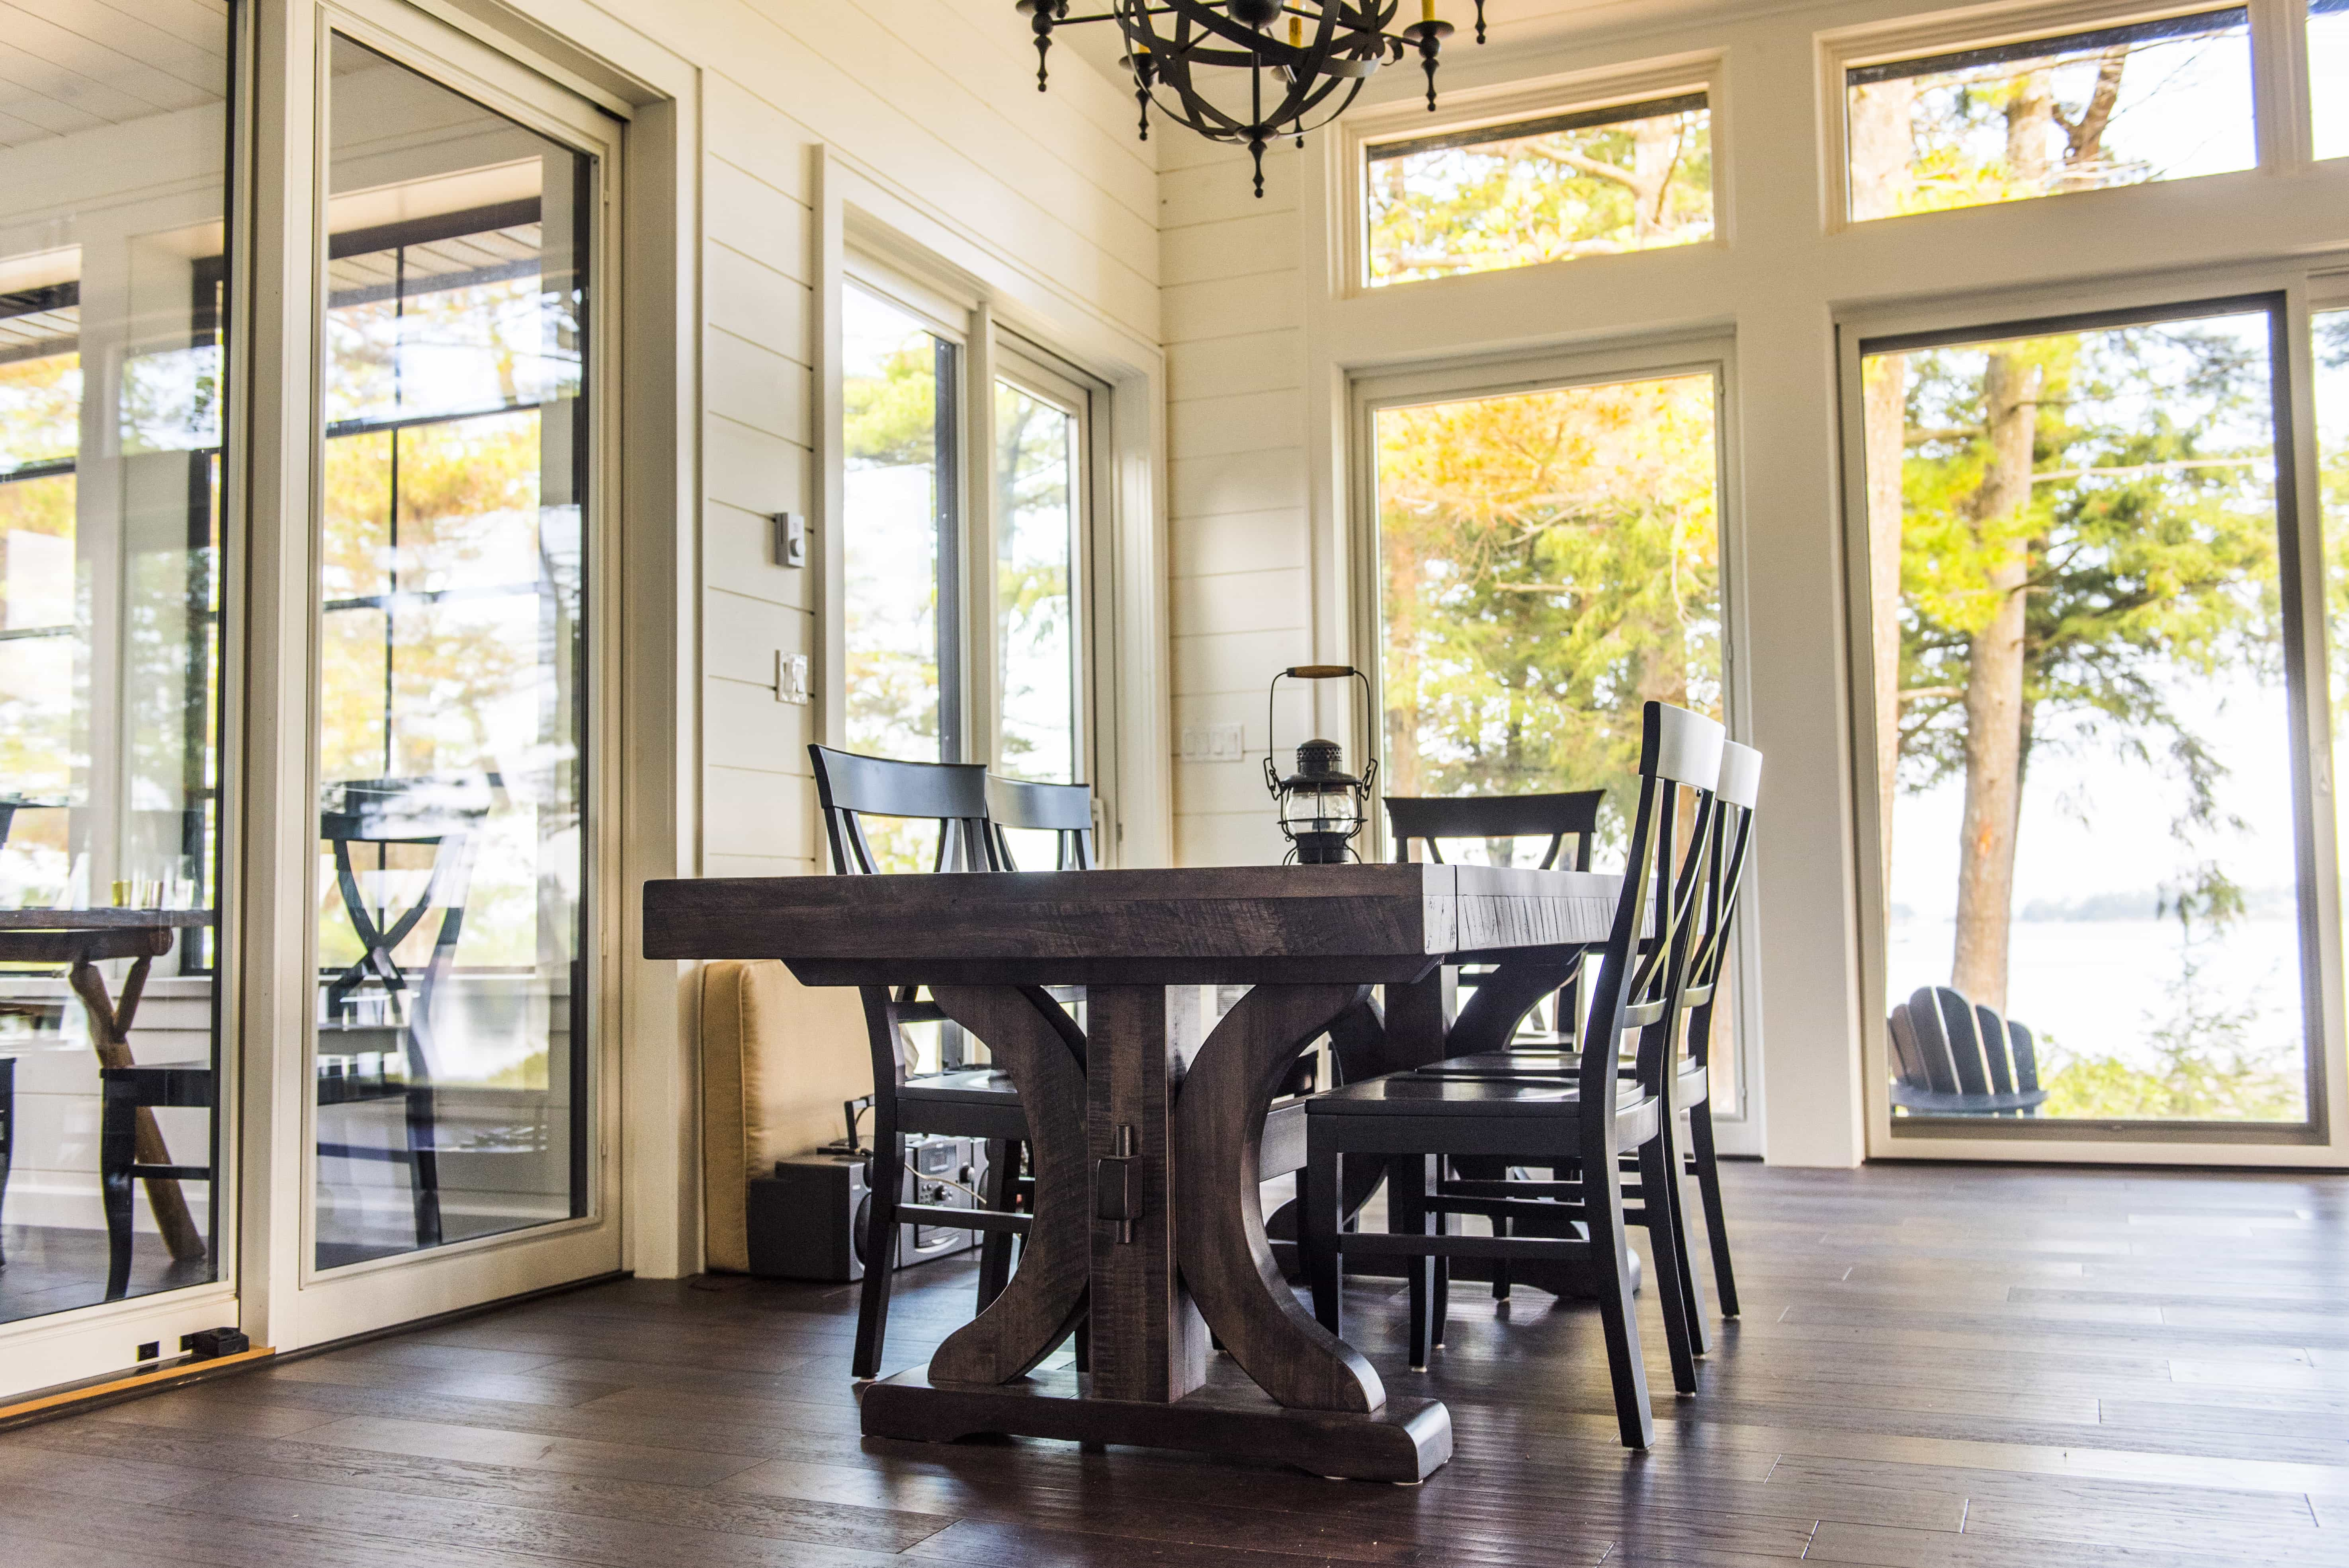 modern/rustic dining area with large windows